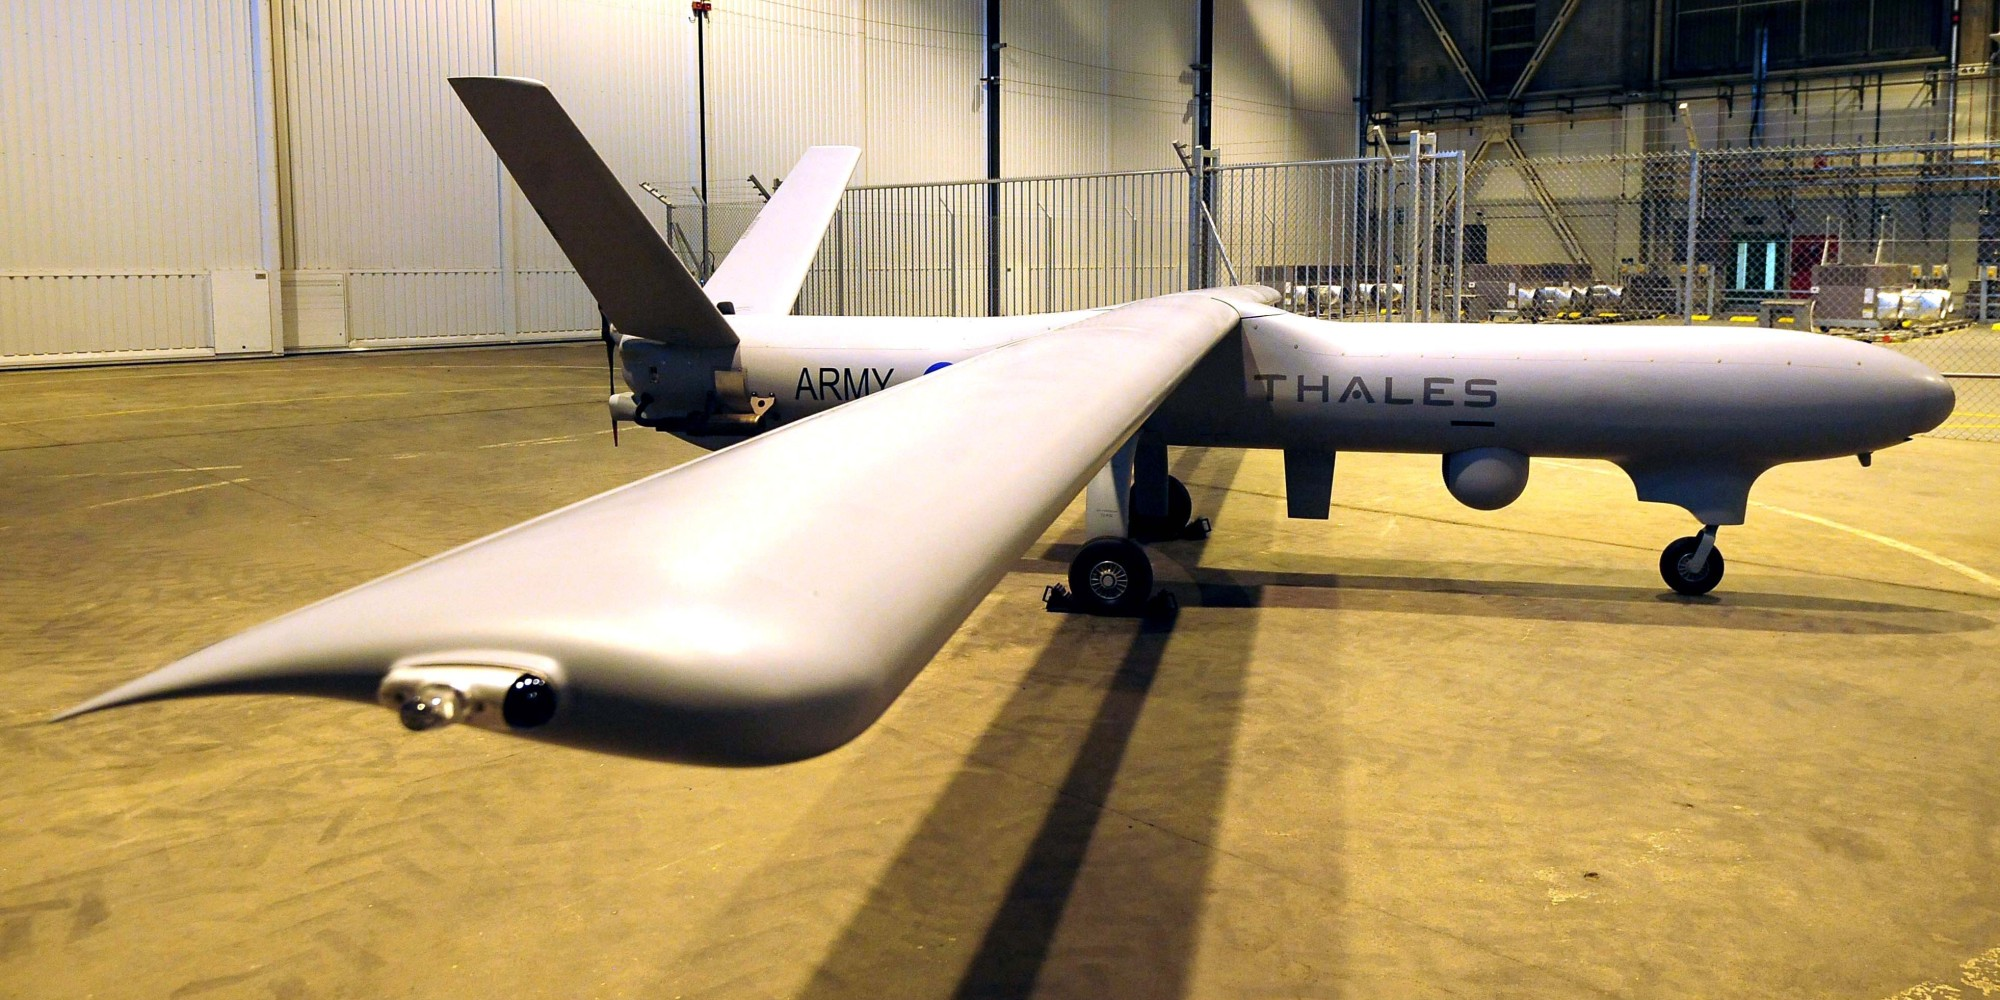 Army S Watchkeeper Drone To Fly Above British Skies